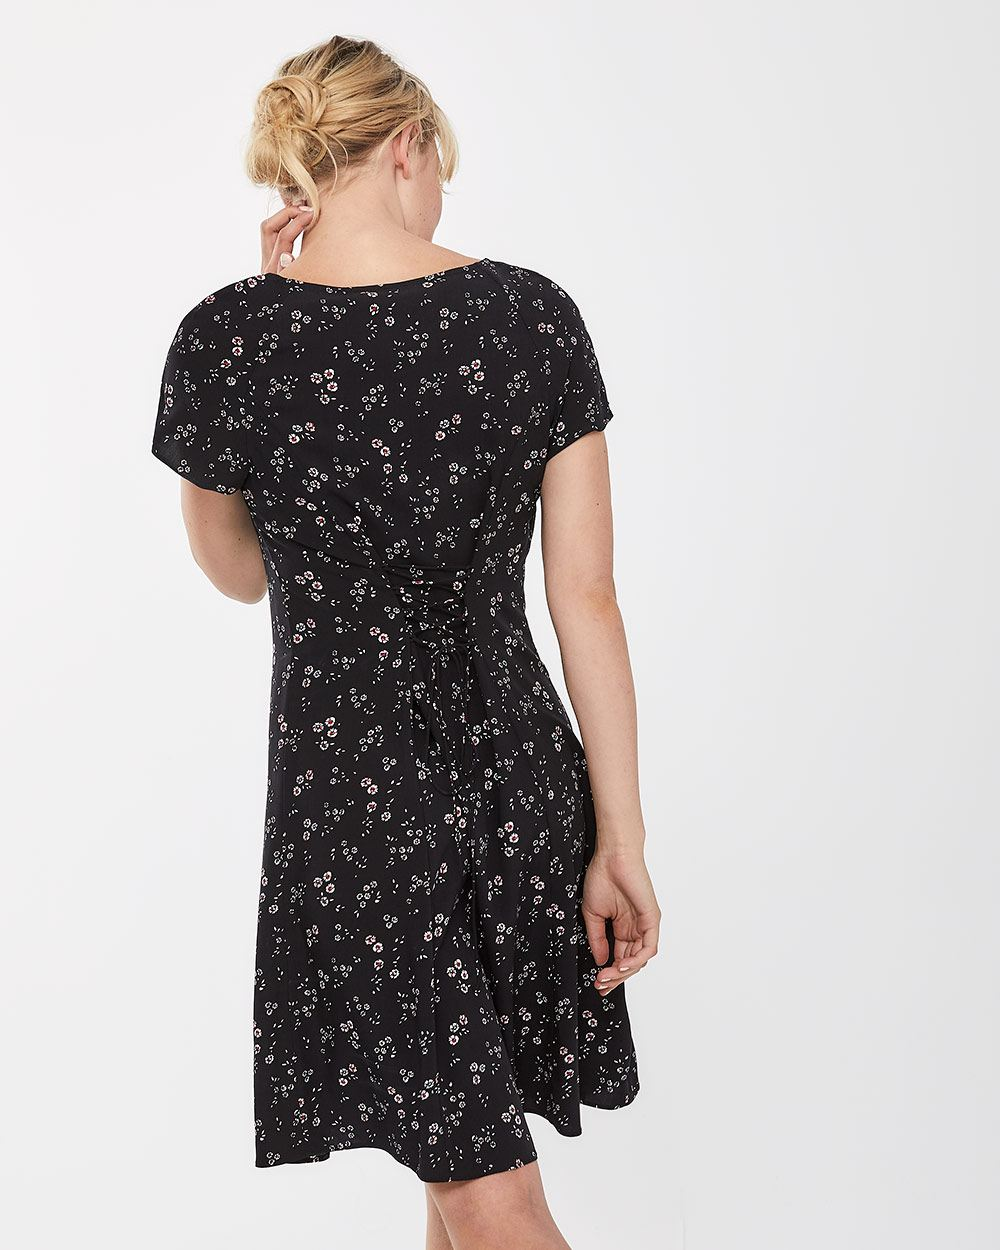 Laced-up Back Swing Dress